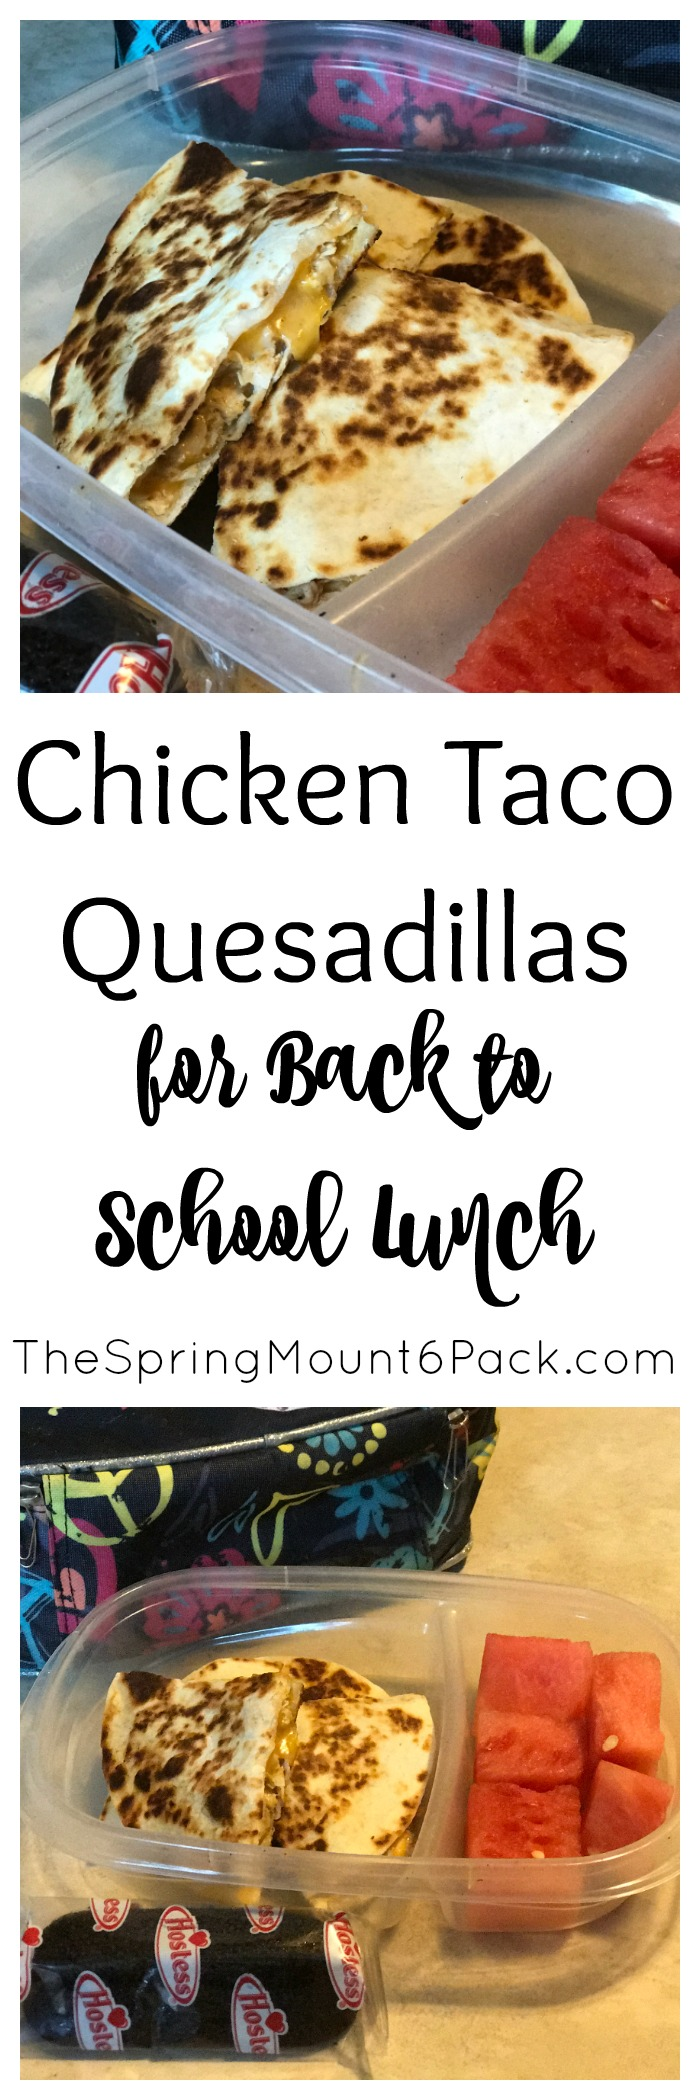 Looking for back to school lunch ideas. Try chicken taco quesadillas. It is a simple way to use left over for kids lunches